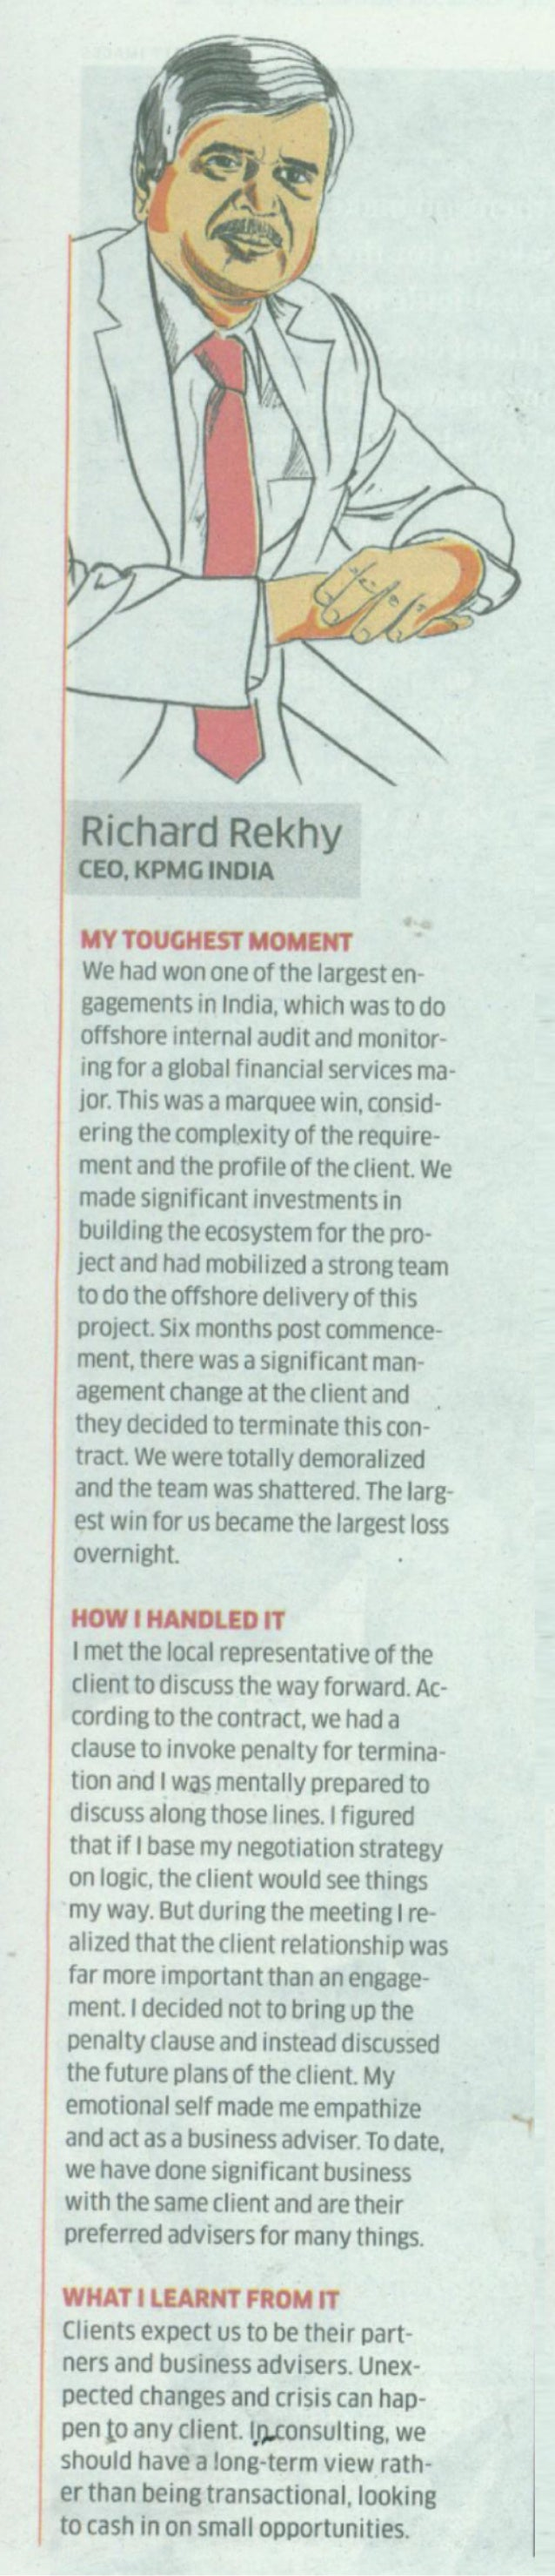 Richard Rekhy, CEO, KPMG in India in The Economic Times